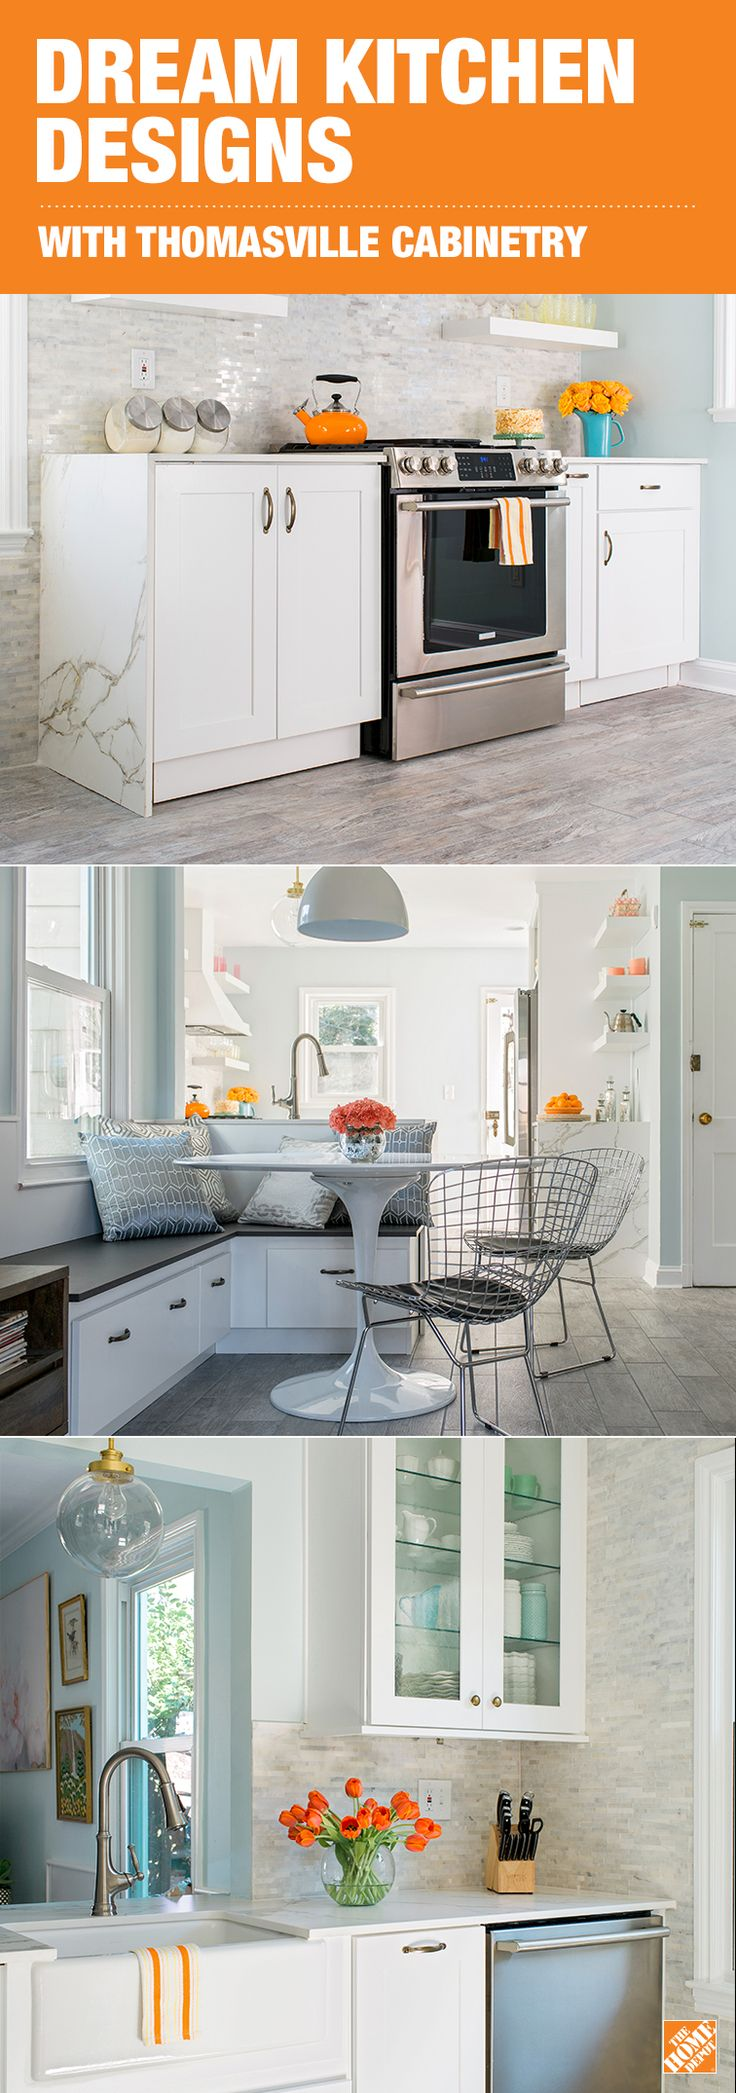 Kitchen make your kitchen dazzle with pertaining to kitchen design - Add More Style And Storage To Your Kitchen With Thomasville Cabinetry Designed With Beauty And